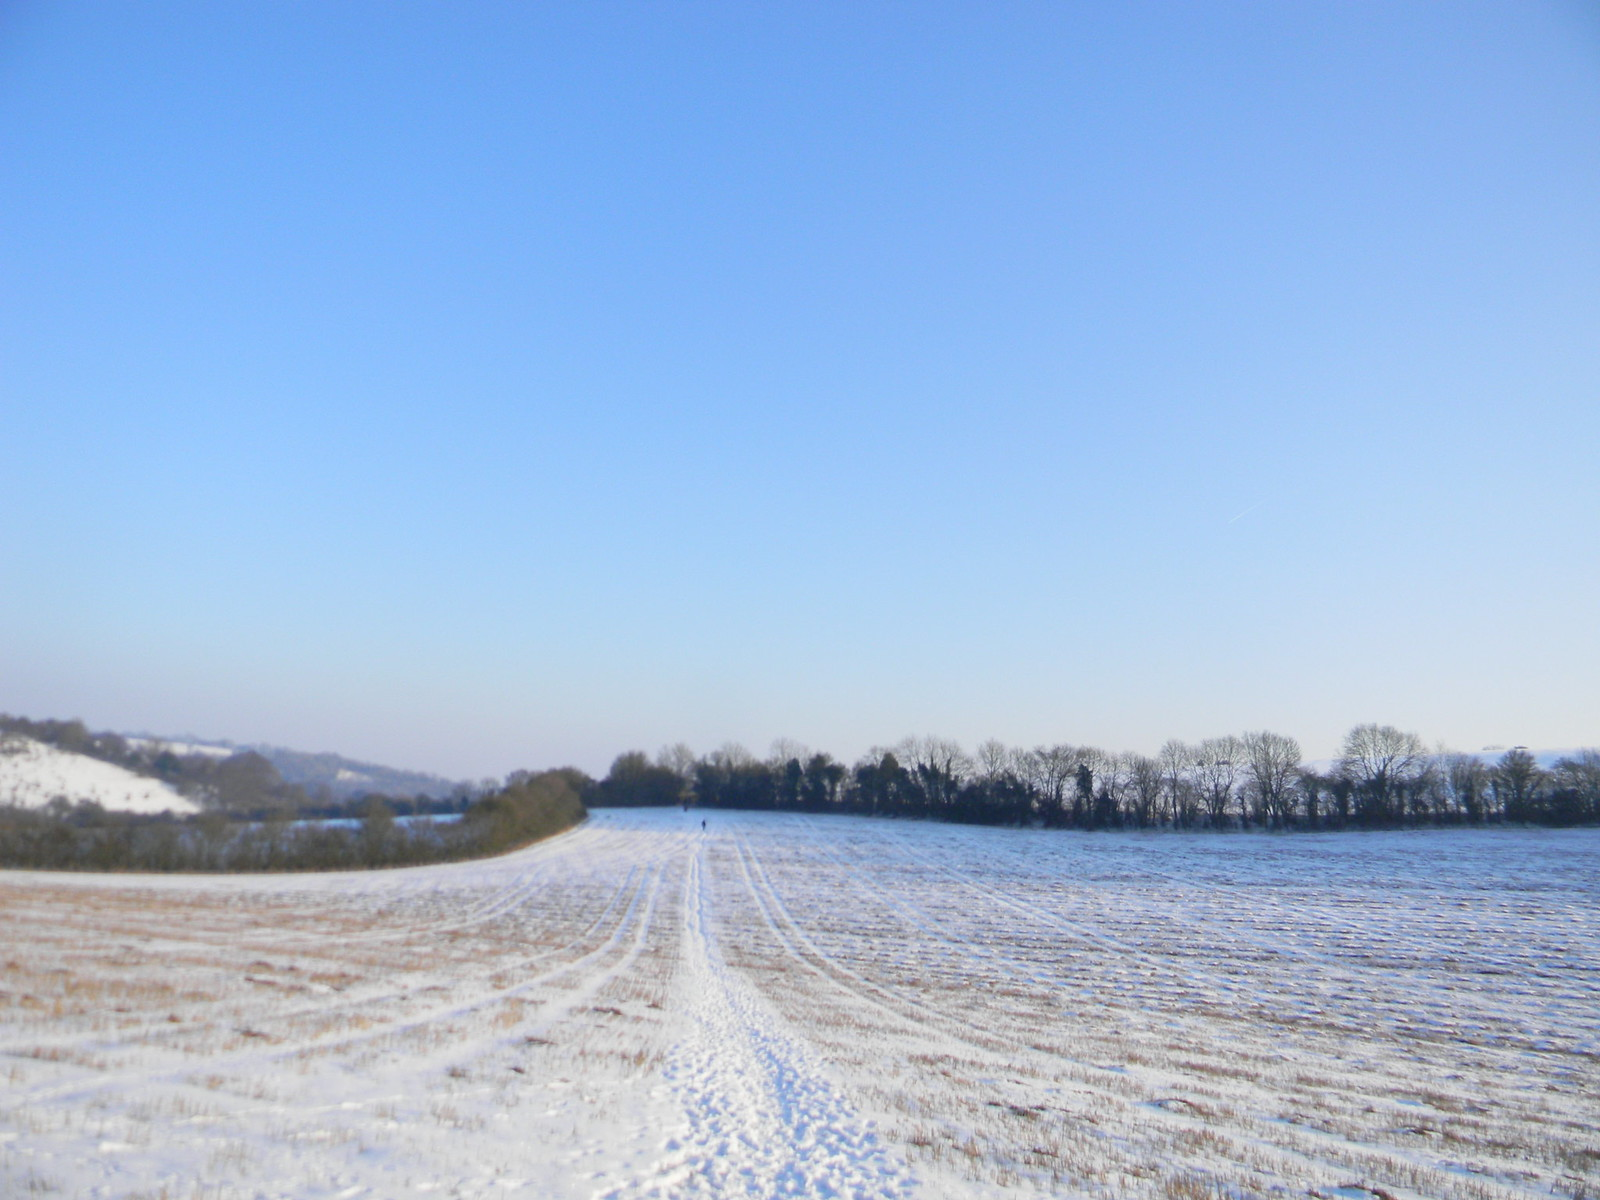 Snowy wastes Saunderton to Bledlow